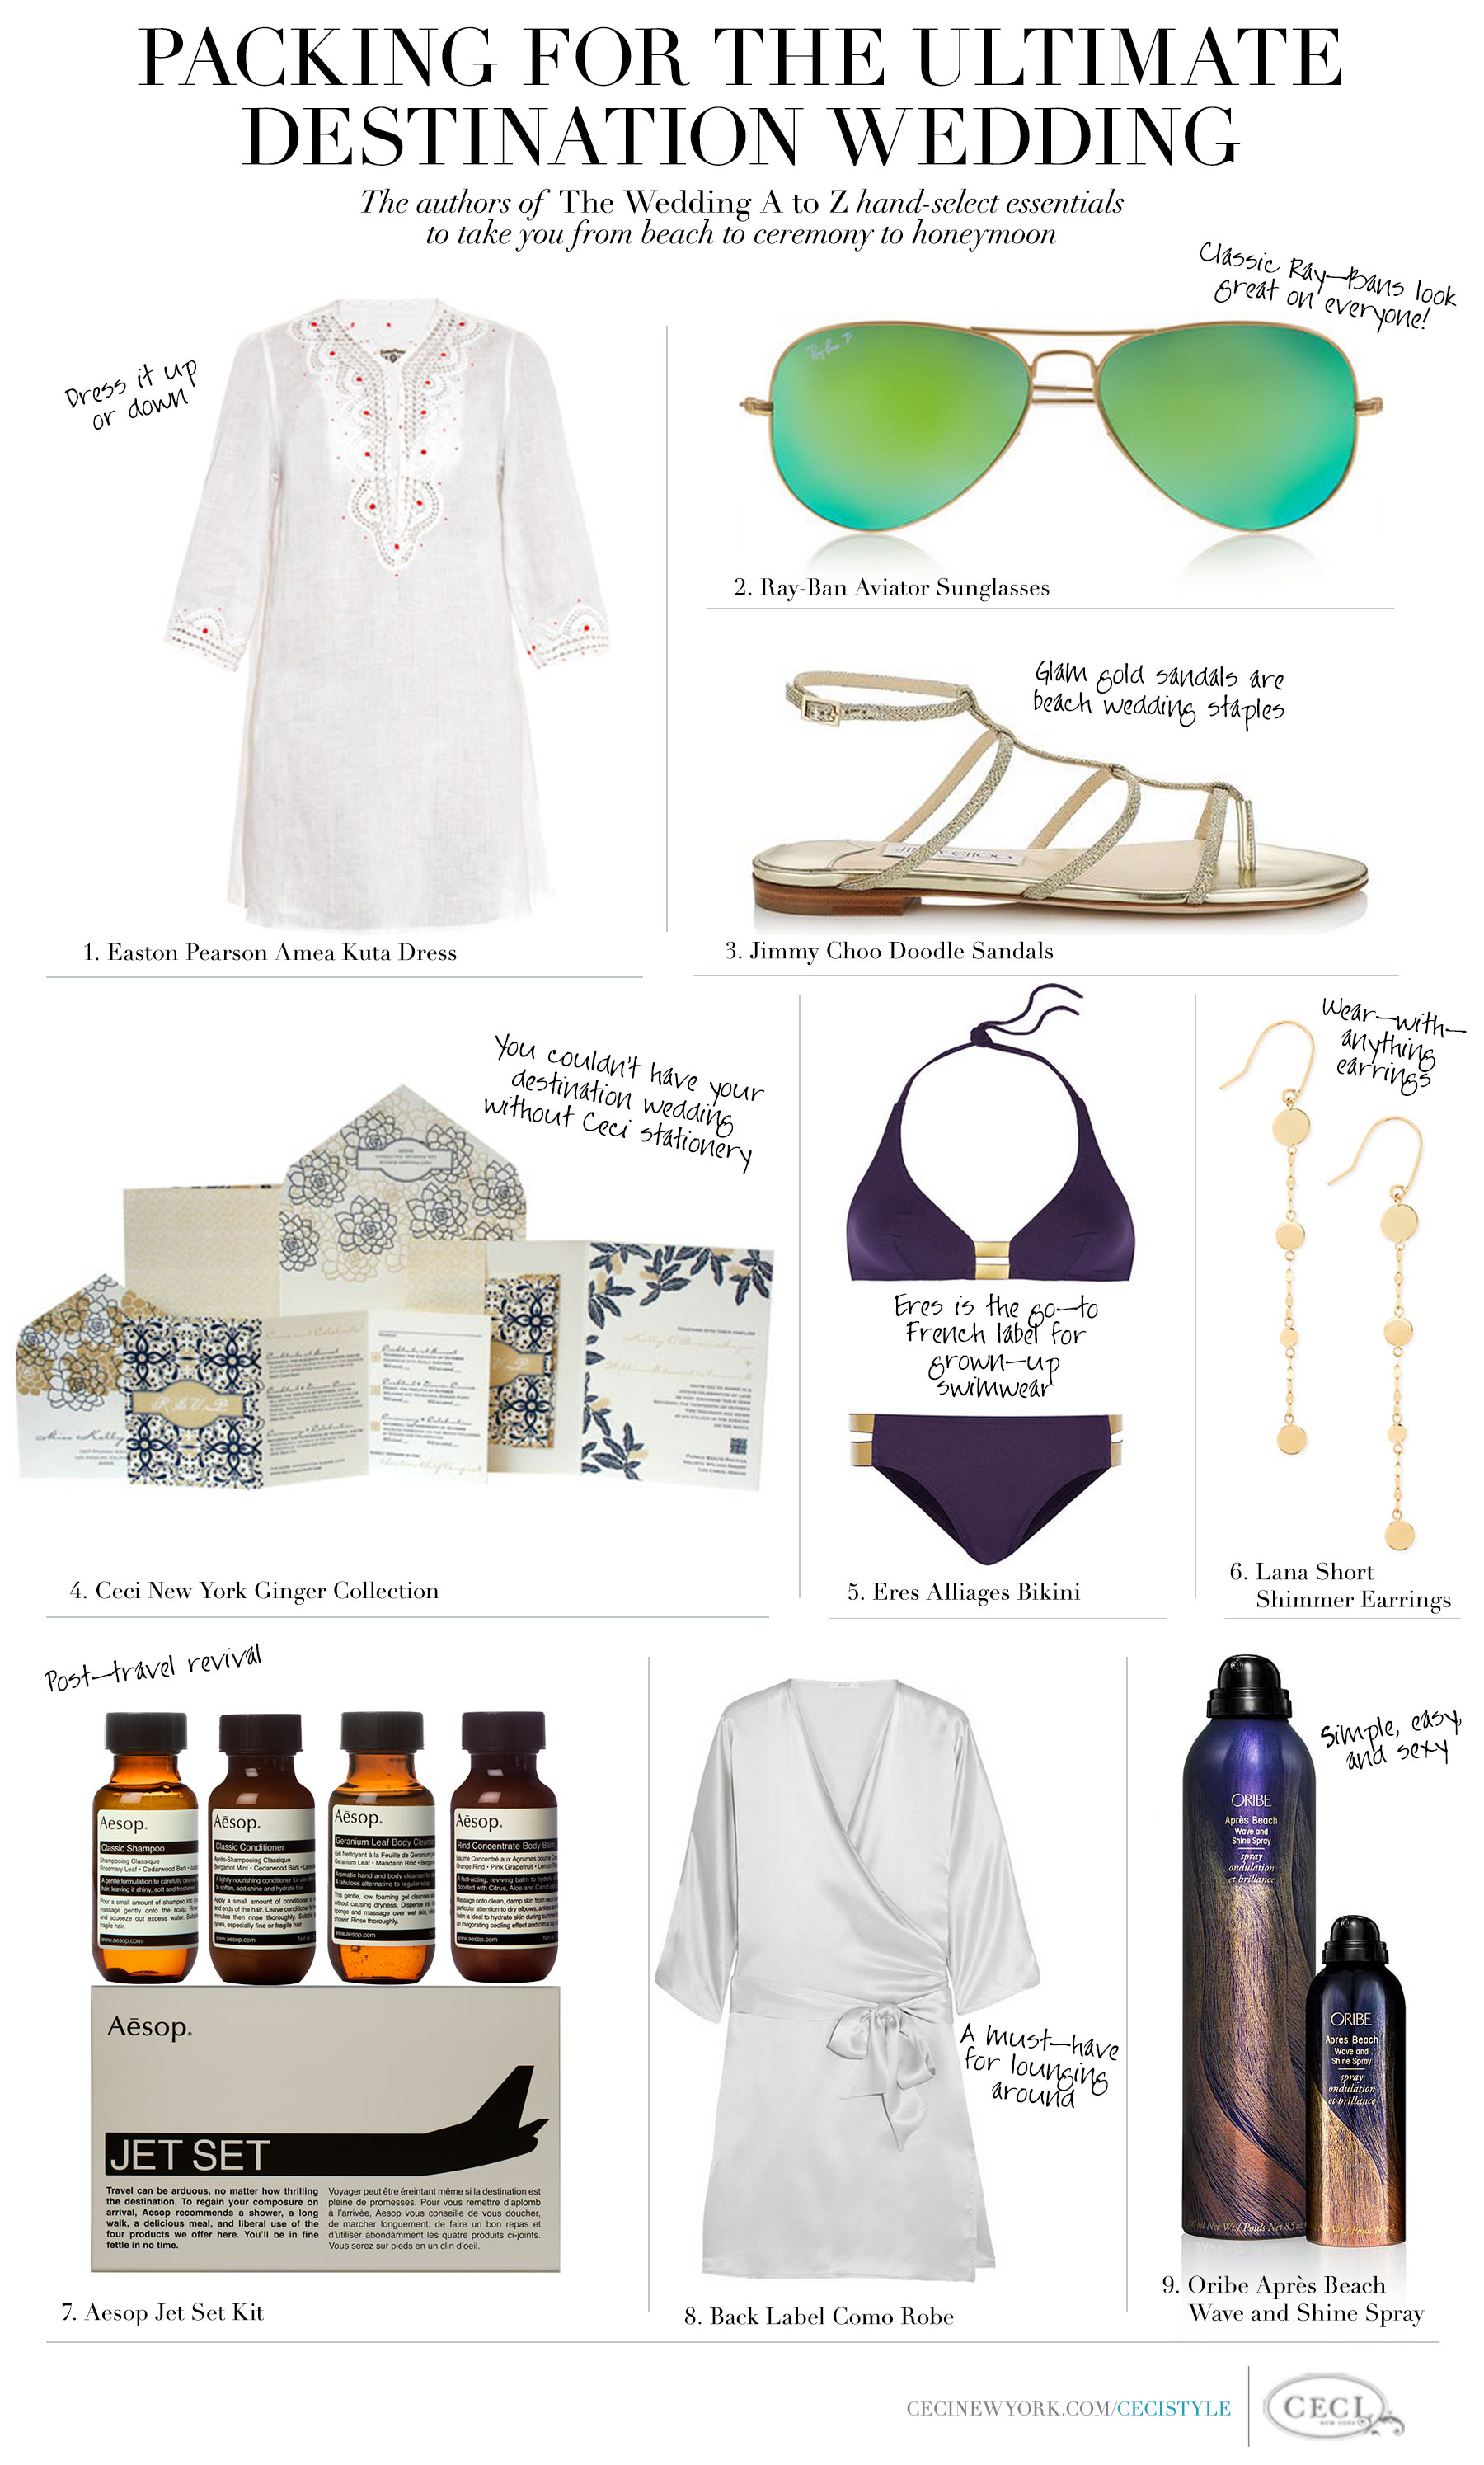 Packing for the Ultimate Destination Wedding - The authors of The Wedding A to Z hand-select essentials to take you from beach to ceremony to honeymoon